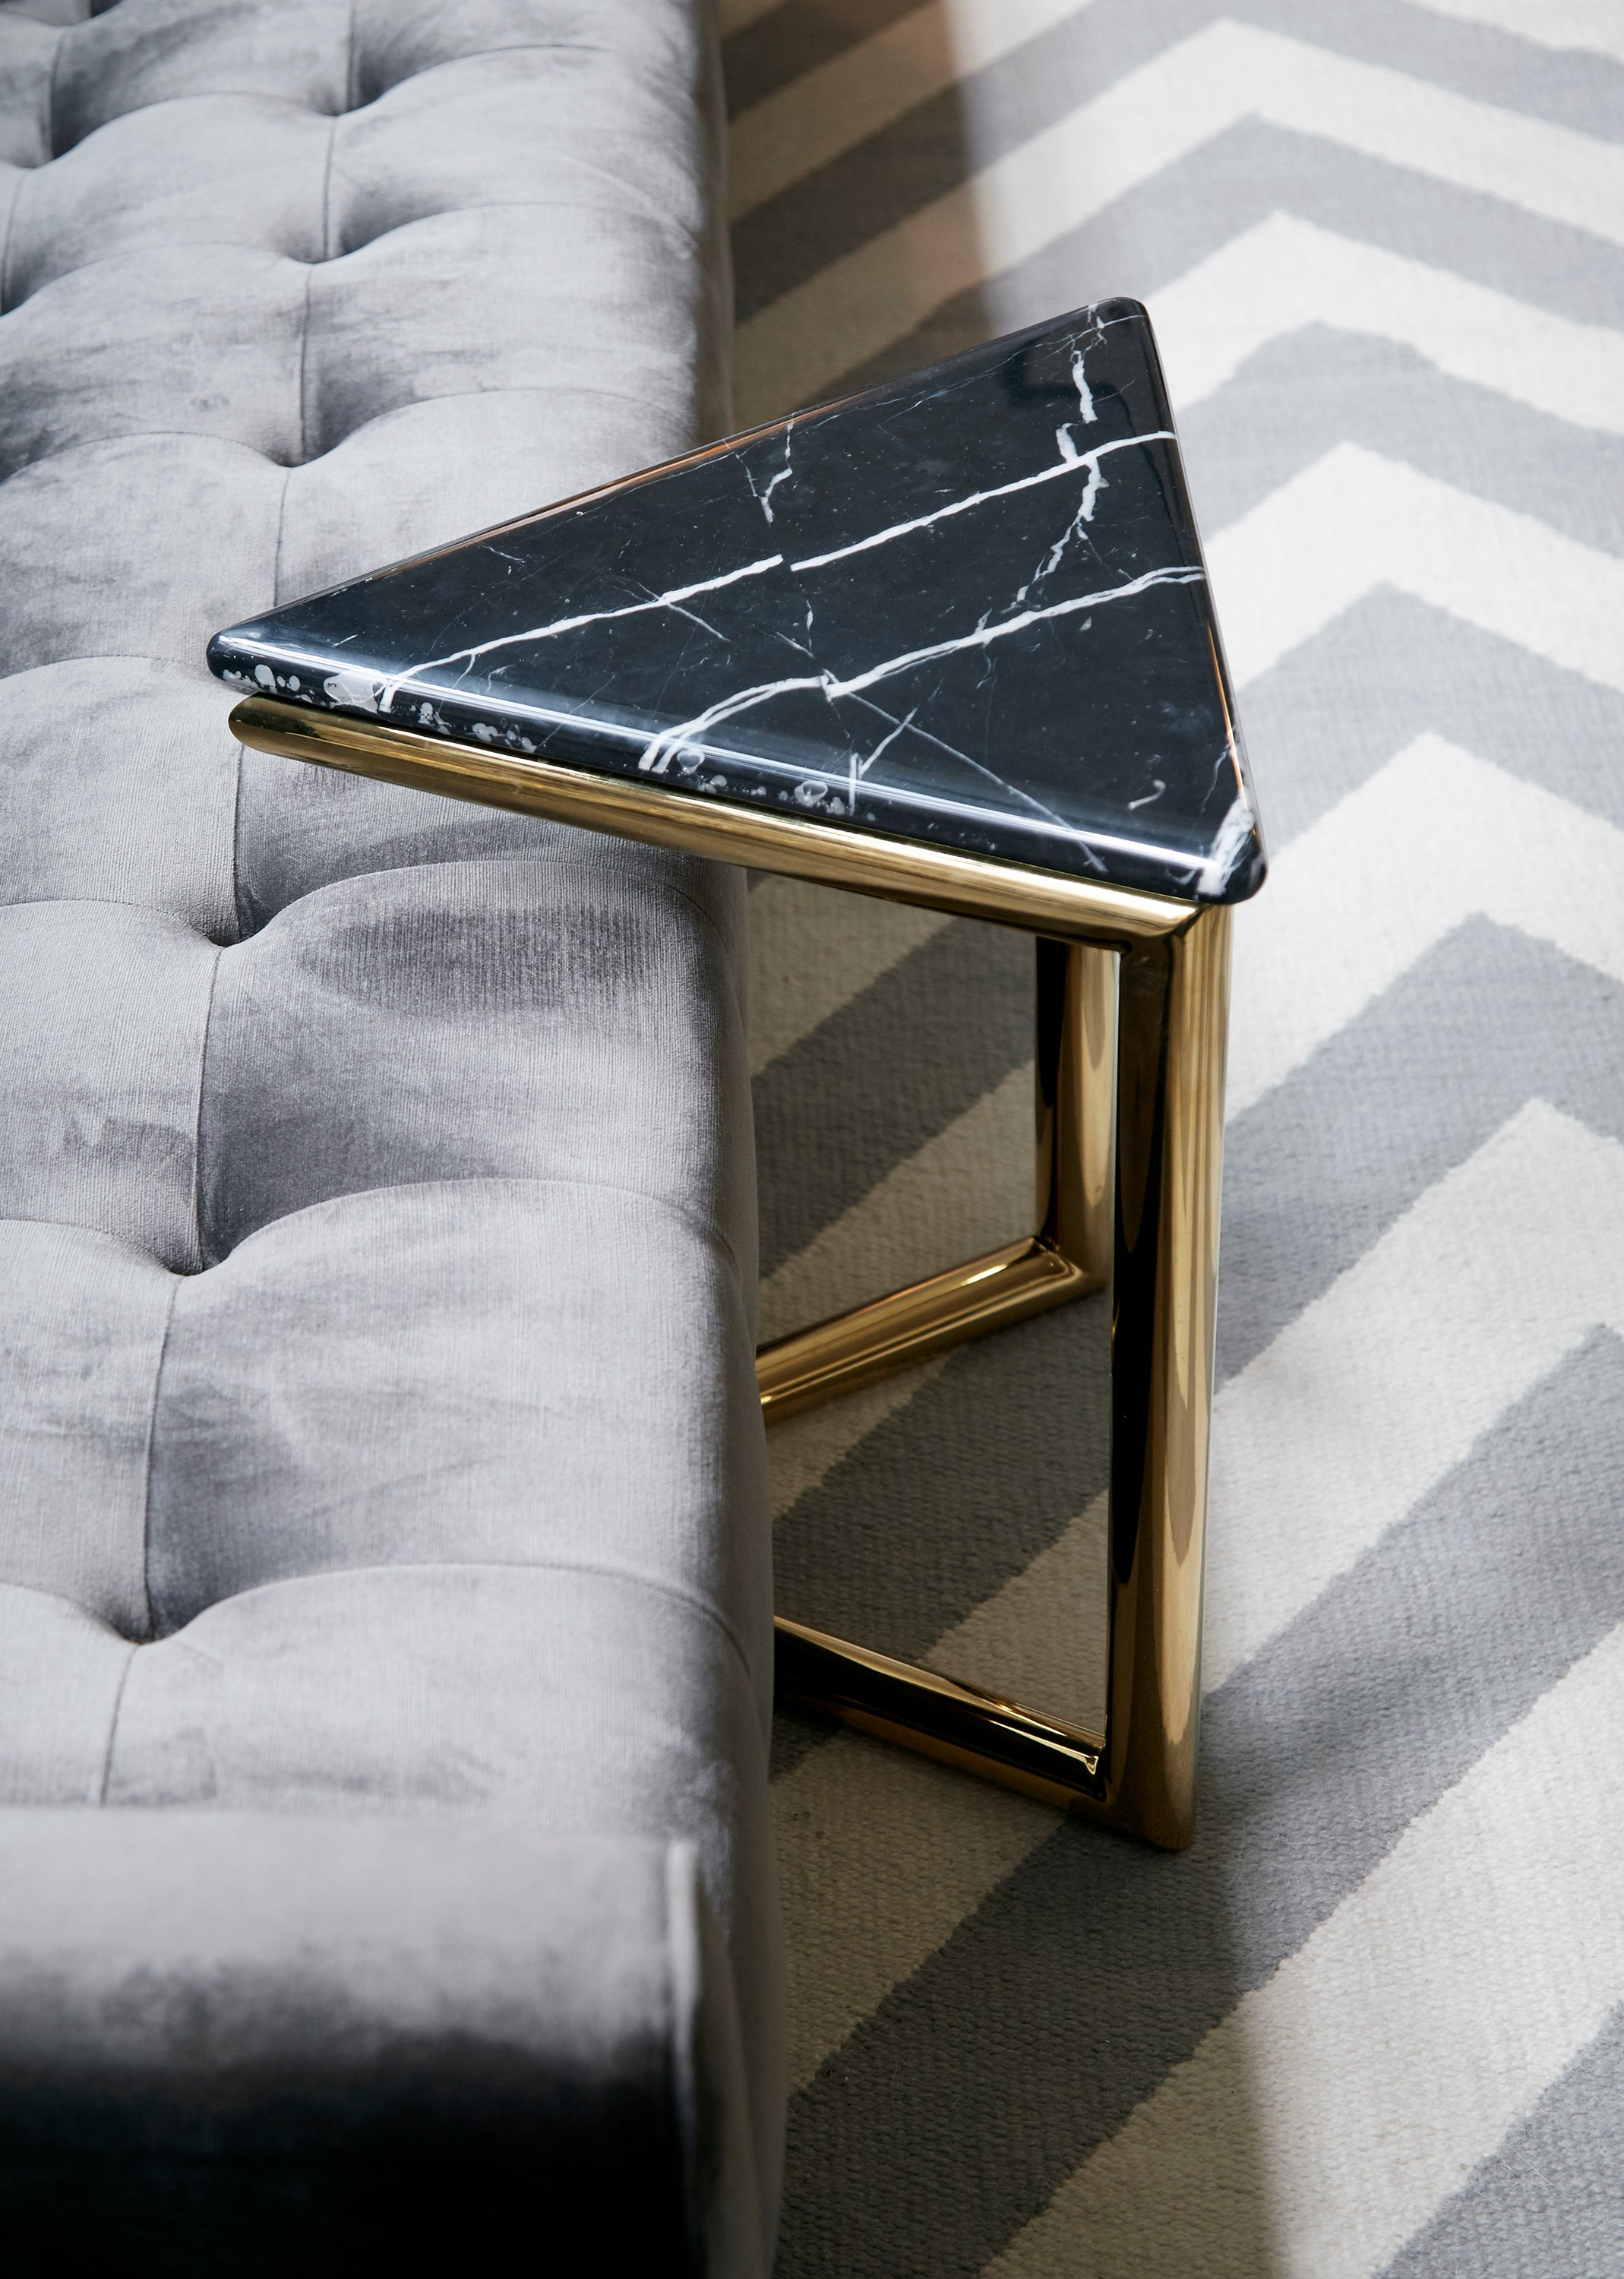 ultra triangle brass and marble accent table zebra waterproof phone pouch target diy concrete home goods kitchen decorative metal legs west elm piece side rustic coffee with